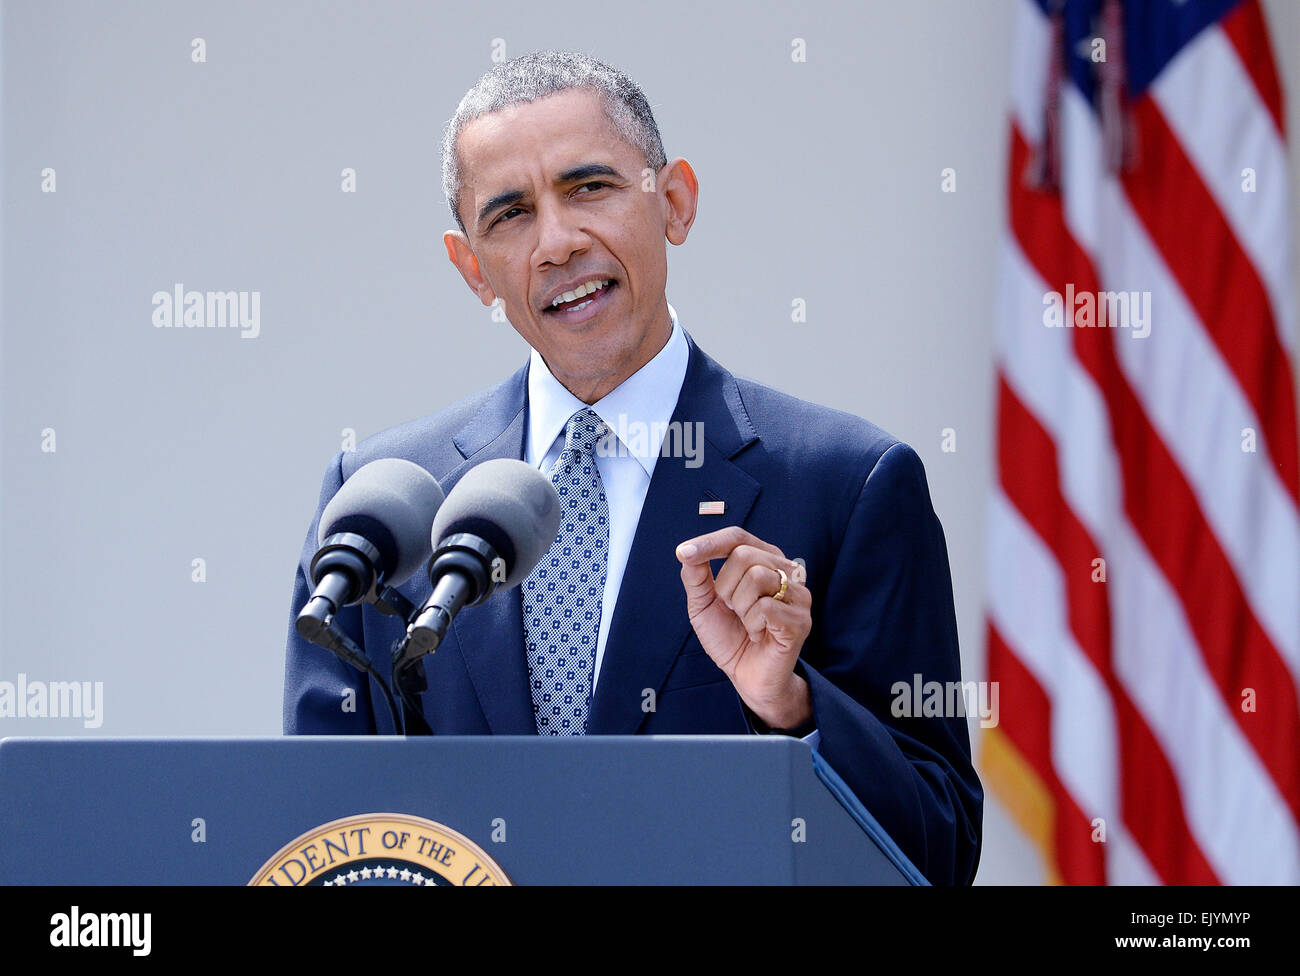 Washington, DC. 2nd Apr, 2015. United States President Barack Obama makes a statement after it was announced Iran - Stock Image